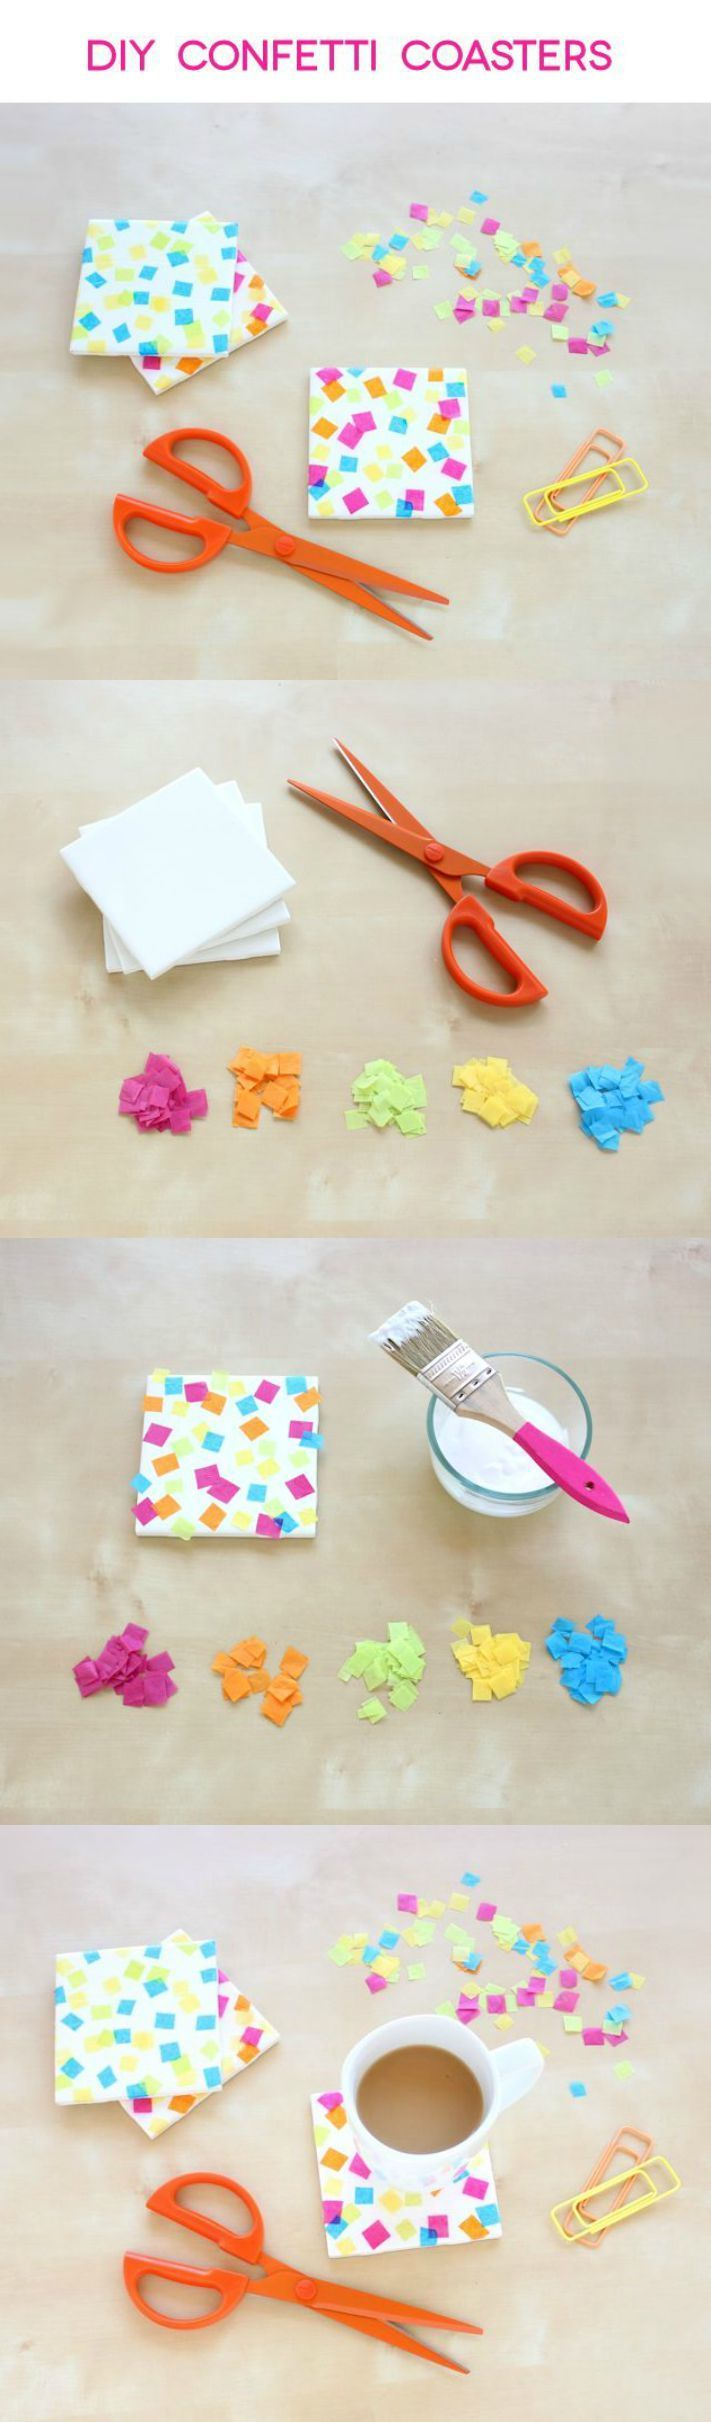 There are a million ways you can transform plain white tiles into DIY coasters with Mod Podge - and tissue paper confetti is one of them!